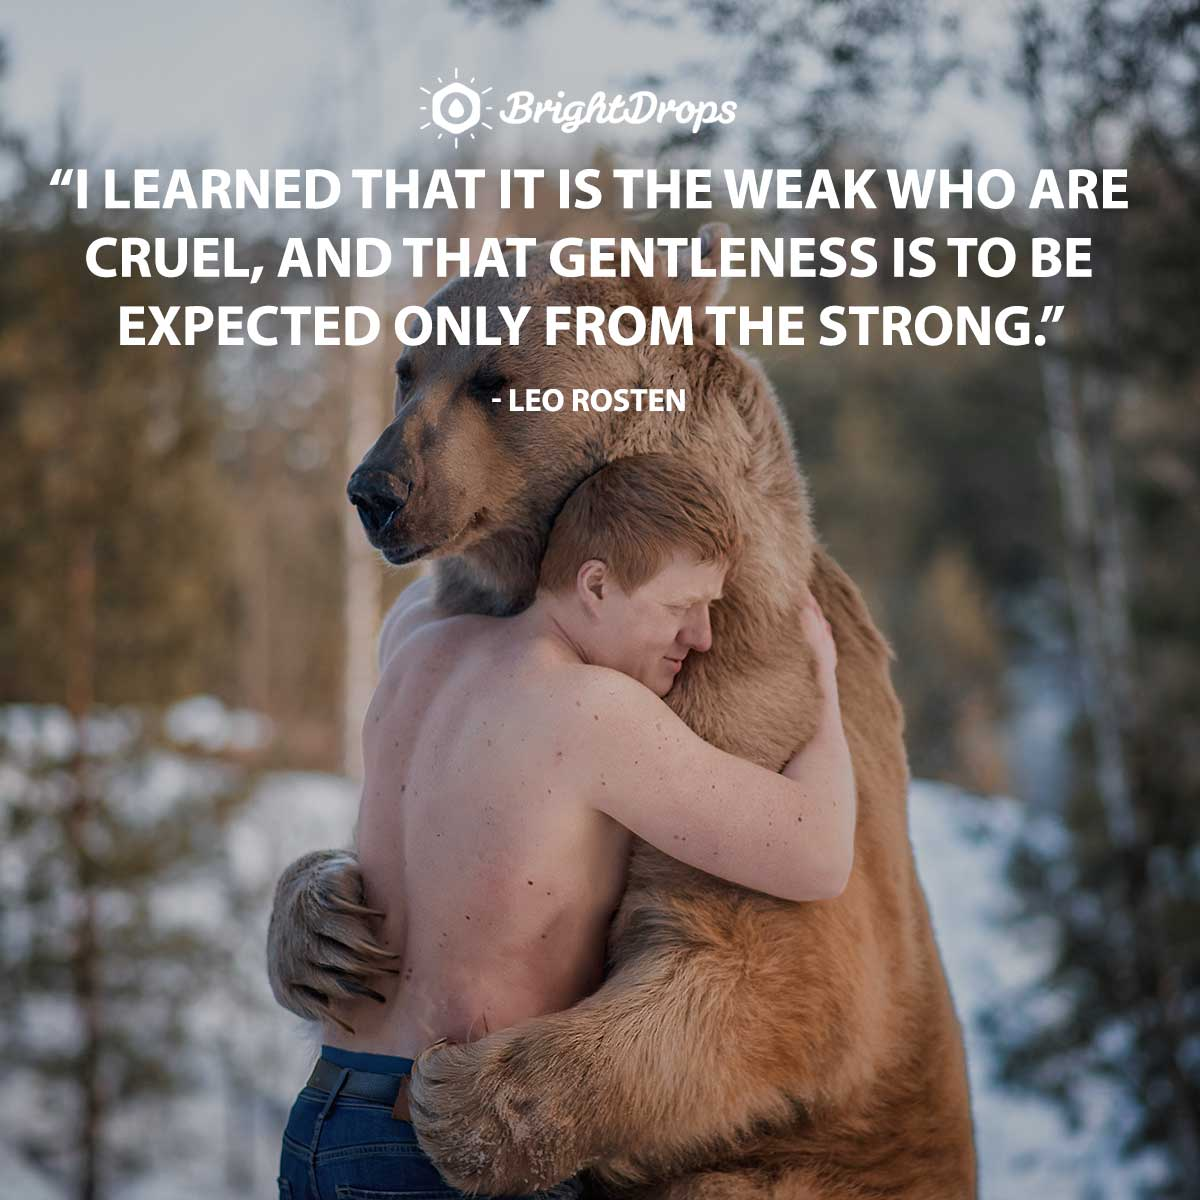 I learned that it is the weak who are cruel, and that gentleness is to be expected only from the strong. - Leo Rosten